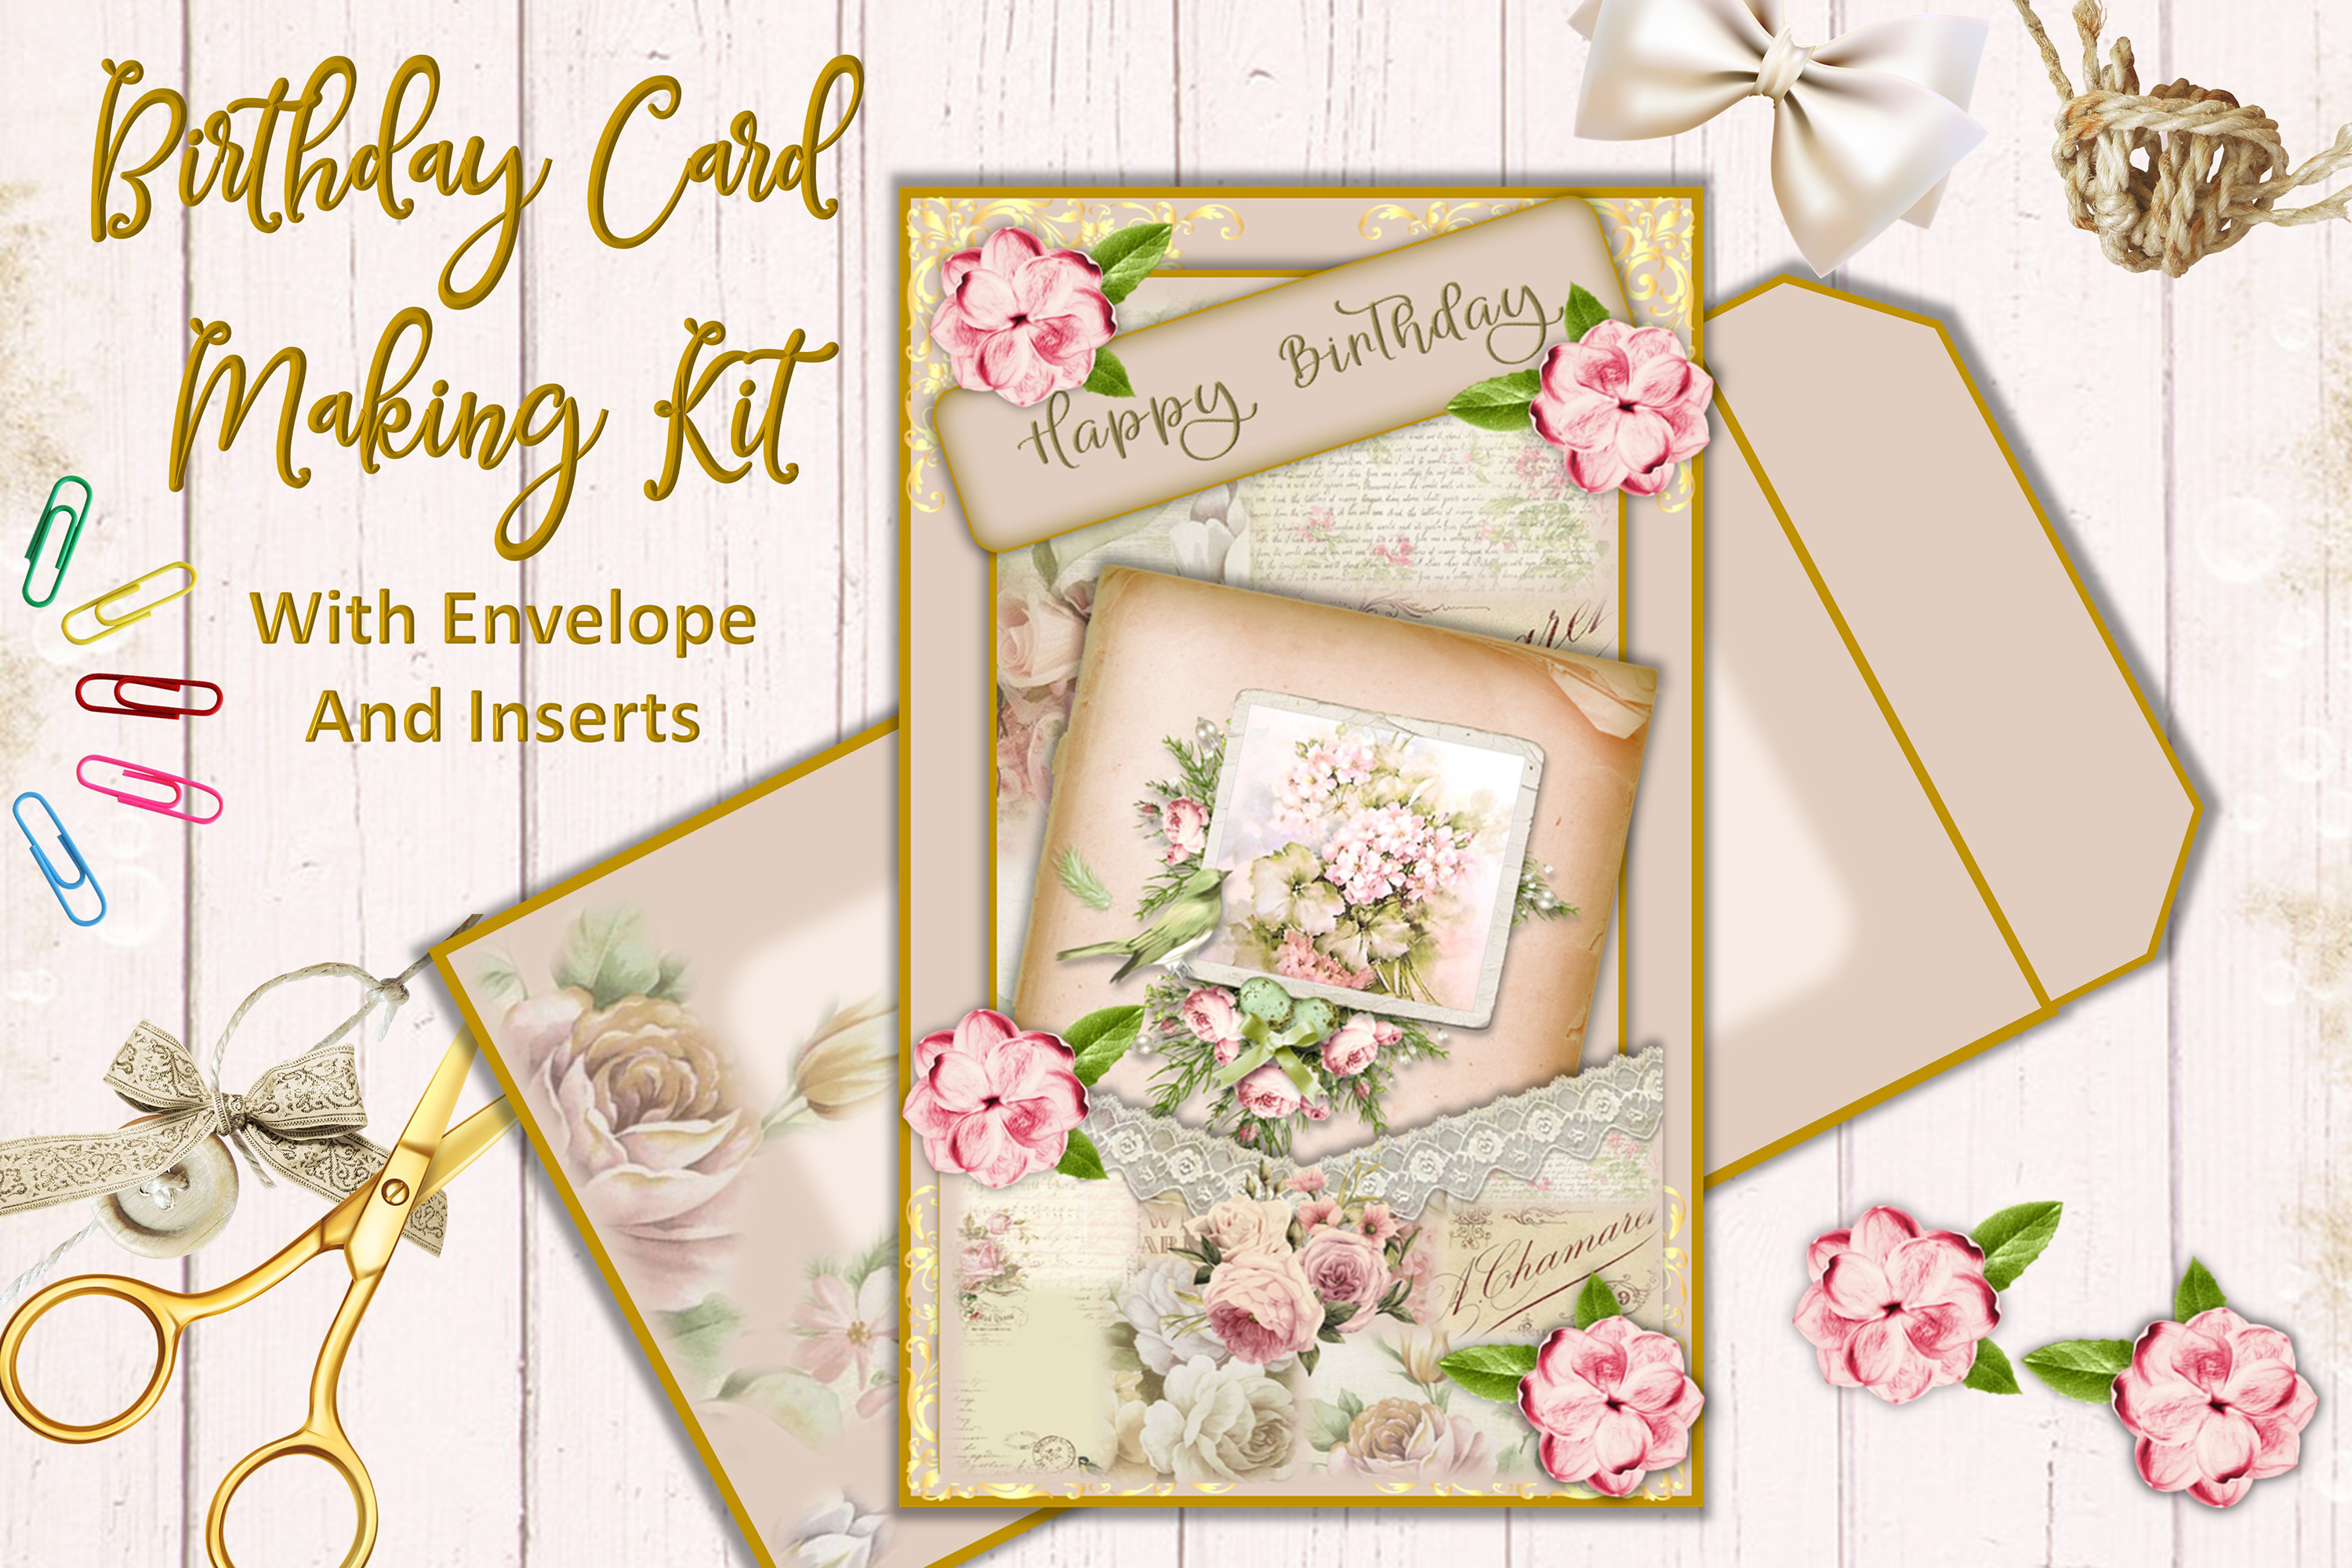 Download Free Birthday Card Making Kit Graphic By Digitalcraftsco Creative Fabrica for Cricut Explore, Silhouette and other cutting machines.